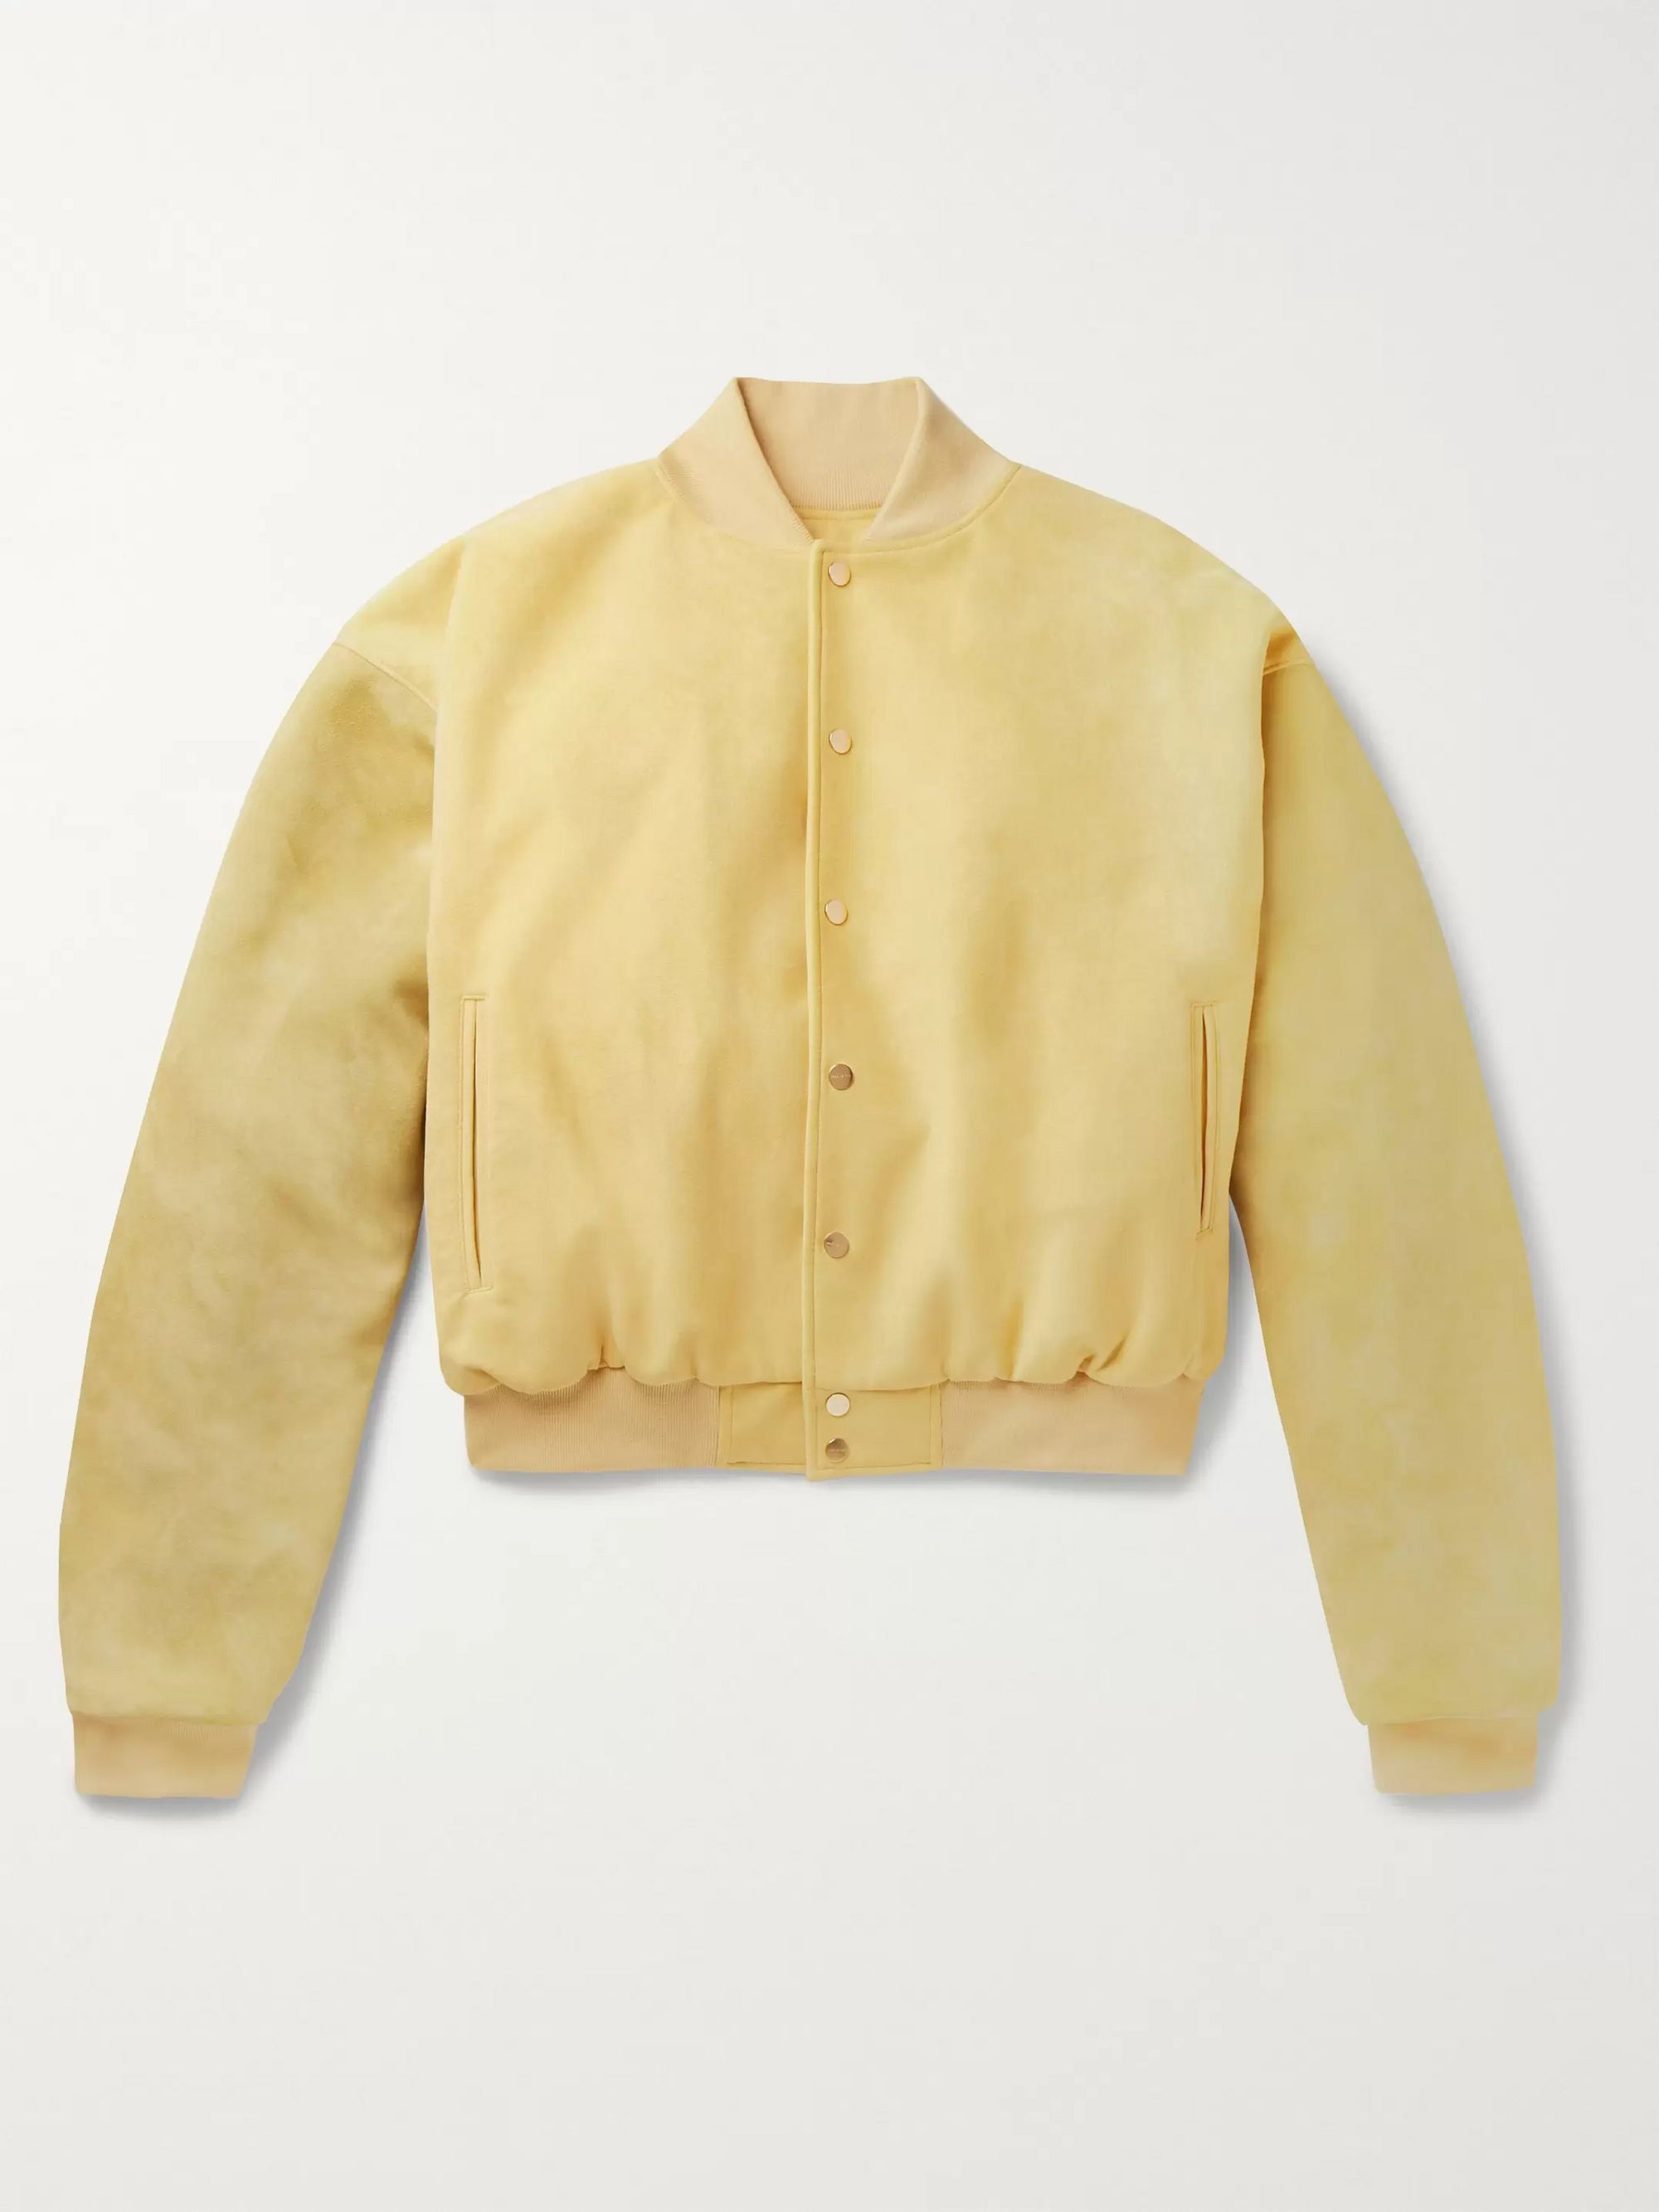 Fear of God Appliquéd Suede-Panelled Faux Suede Bomber Jacket